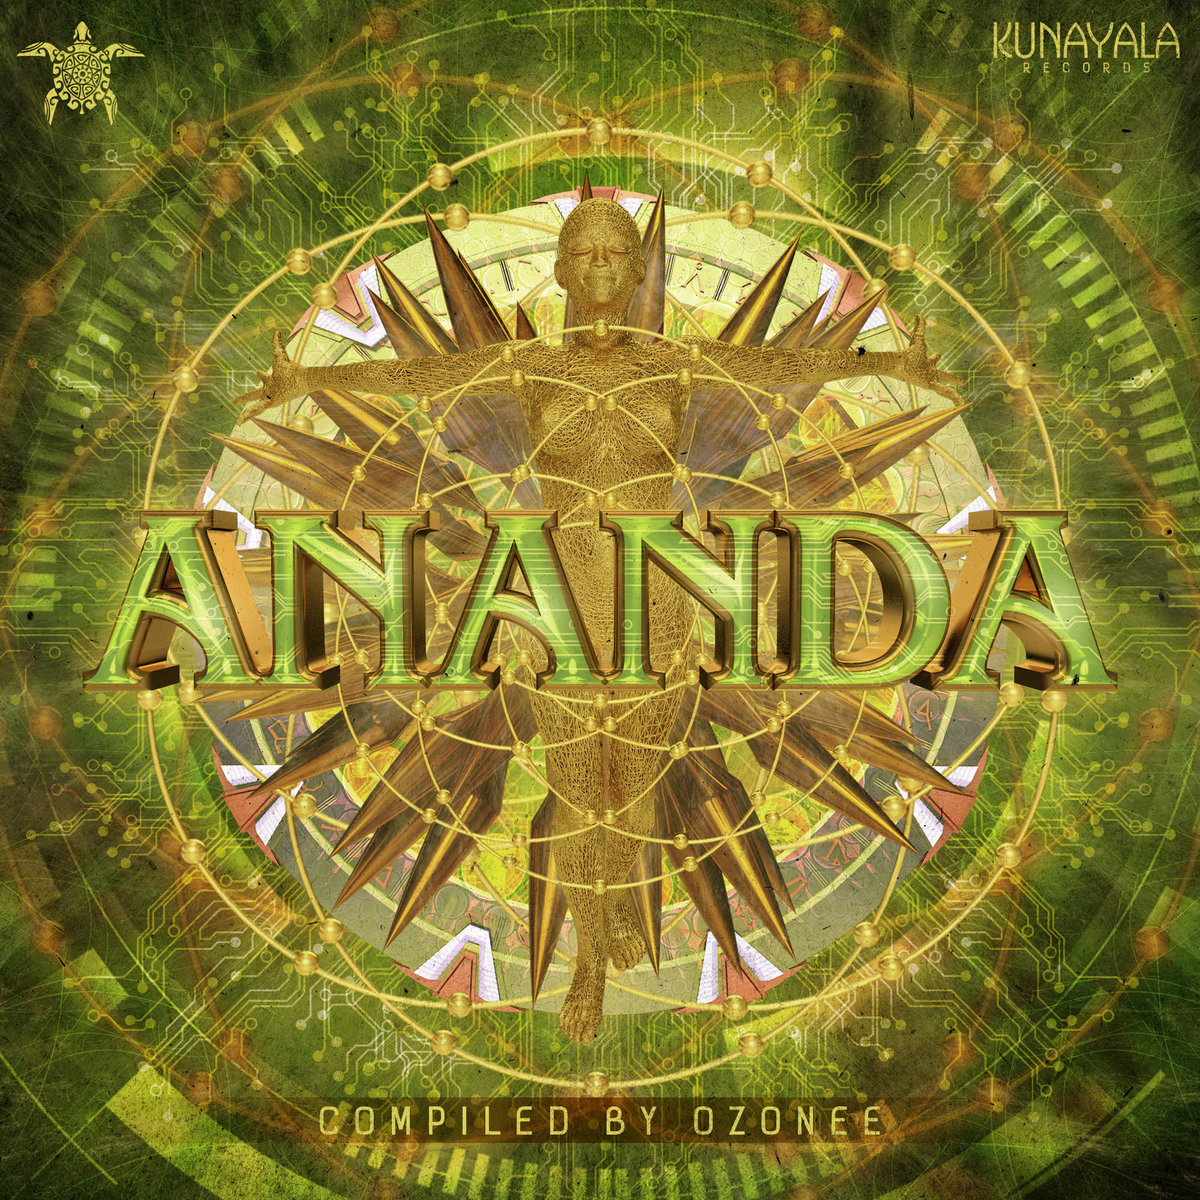 V.A. Ananda (Compiled by Ozonee)